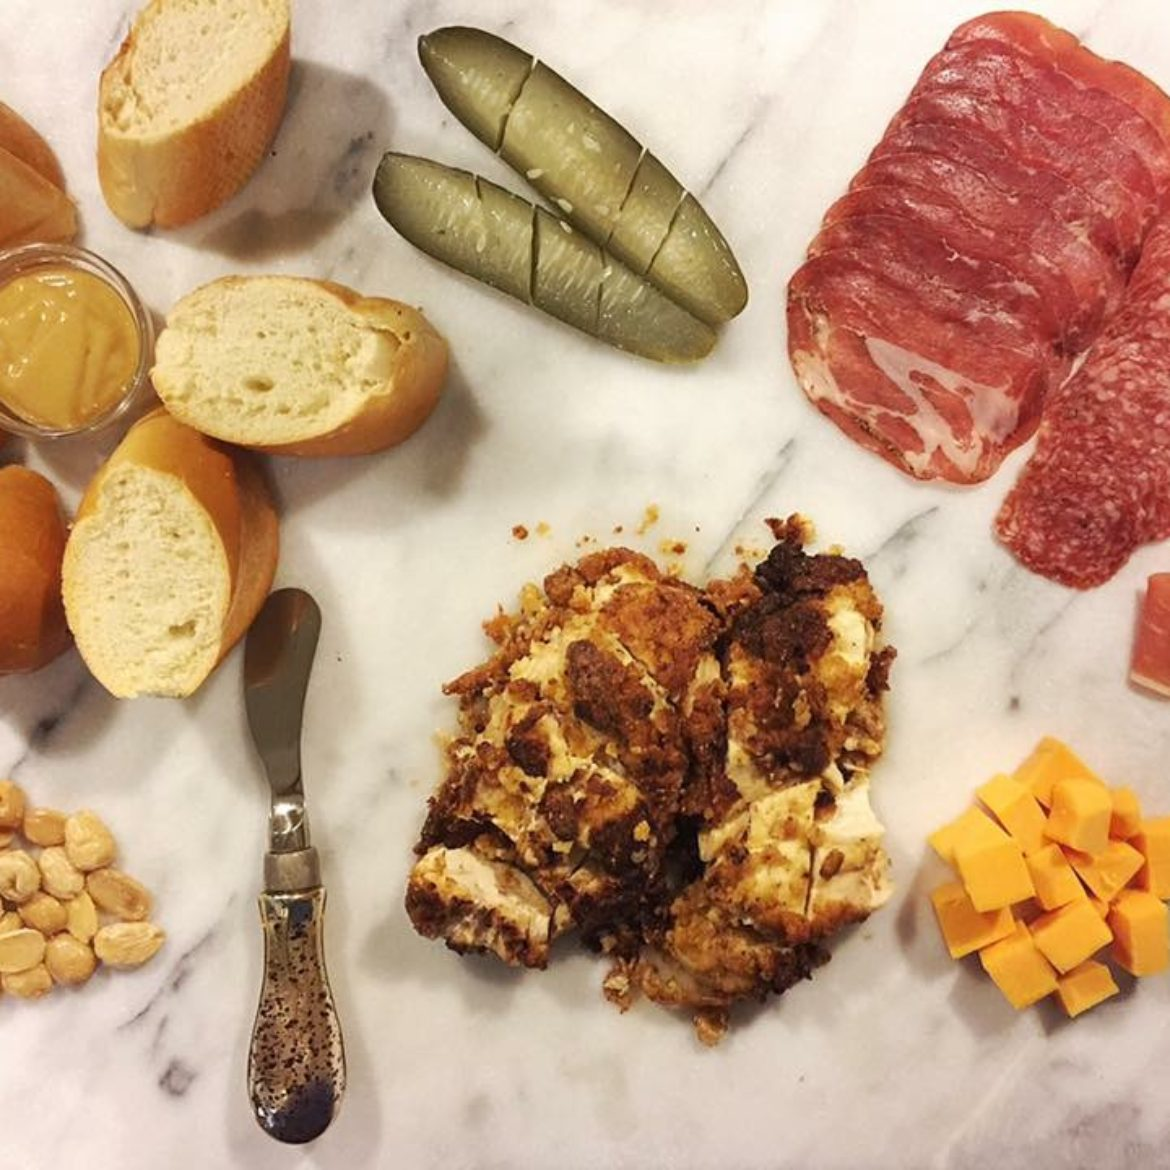 How to make a good charcuterie board